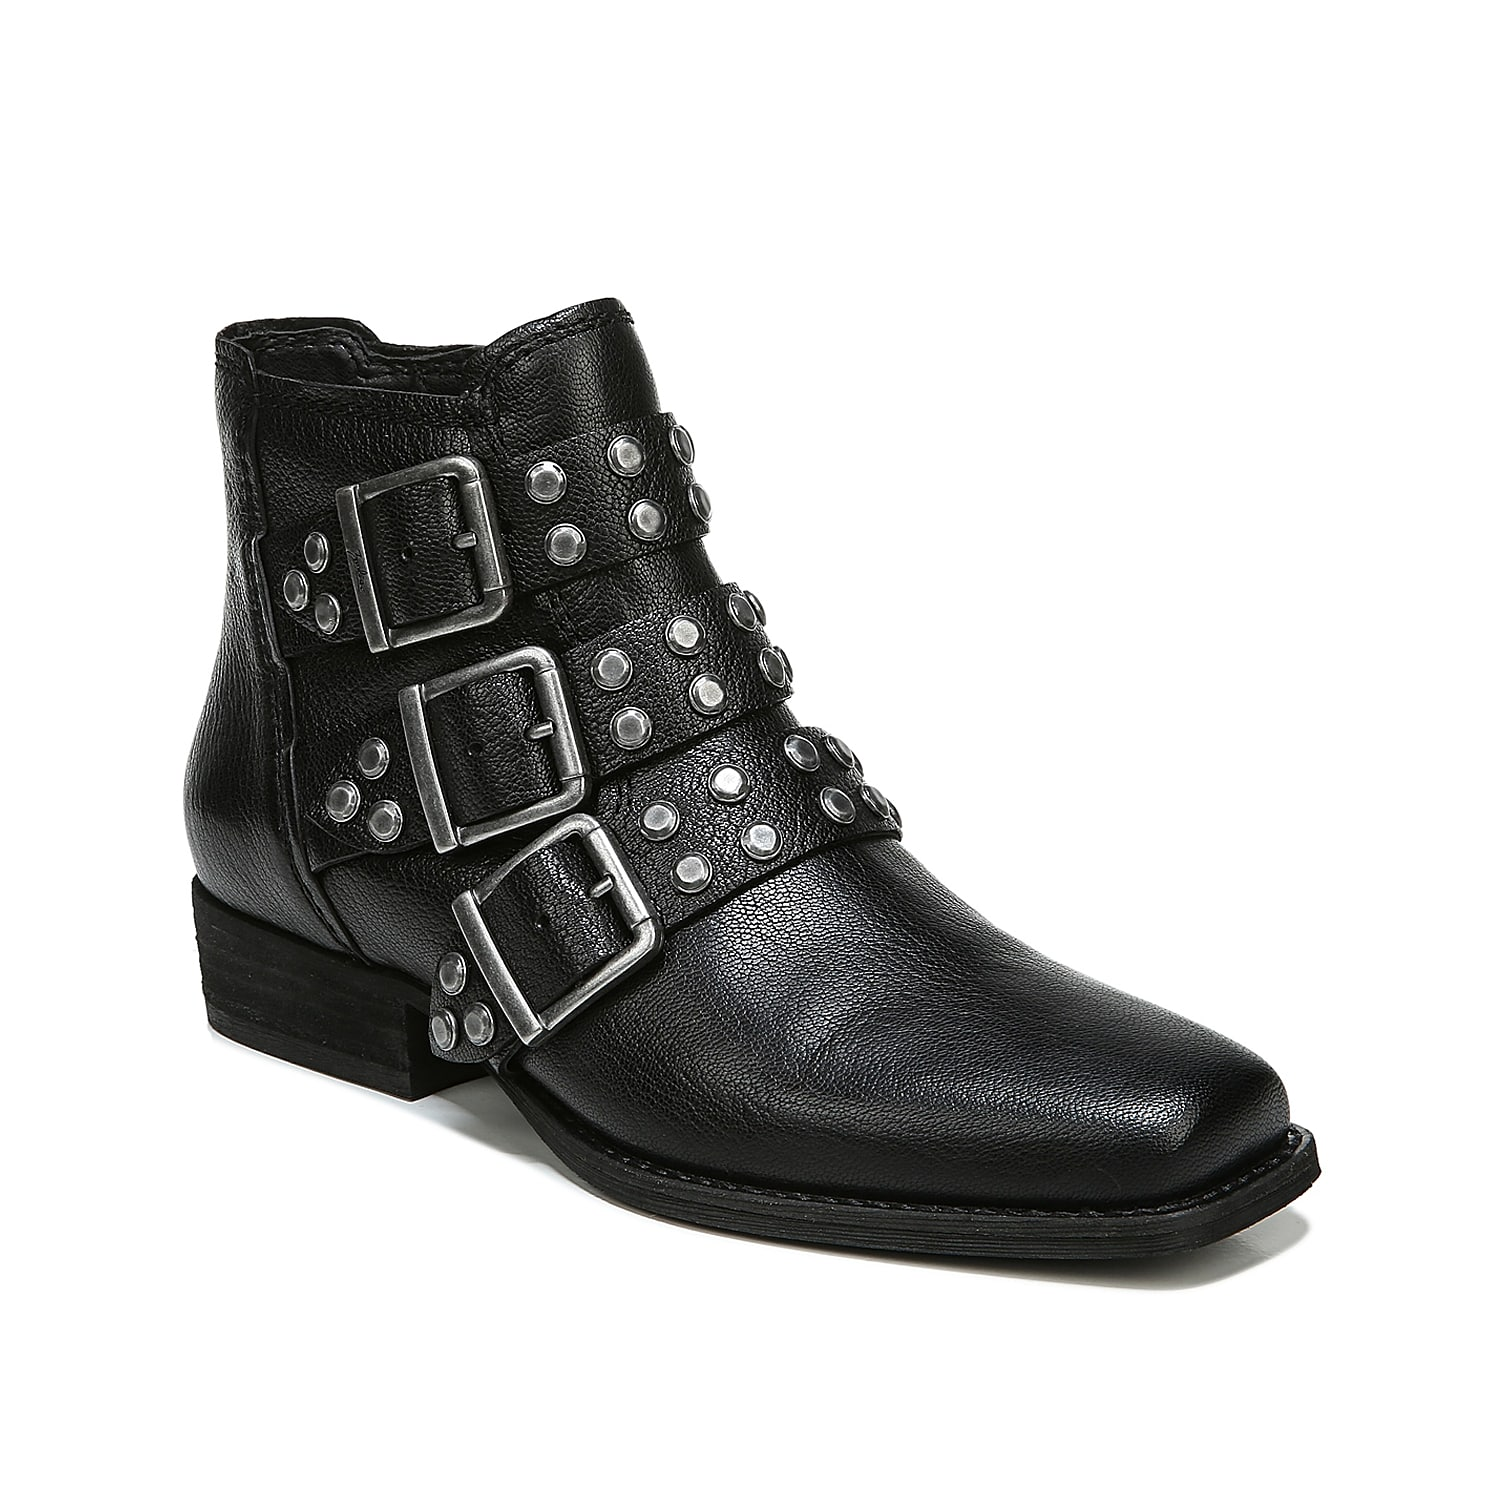 Make your own statement with the classy and impressive Zodiac Adele bootie. Accented with buckled straps and stud accents, this bootie has a side zip for convenient wear.Click here for Boot Measuring Guide.